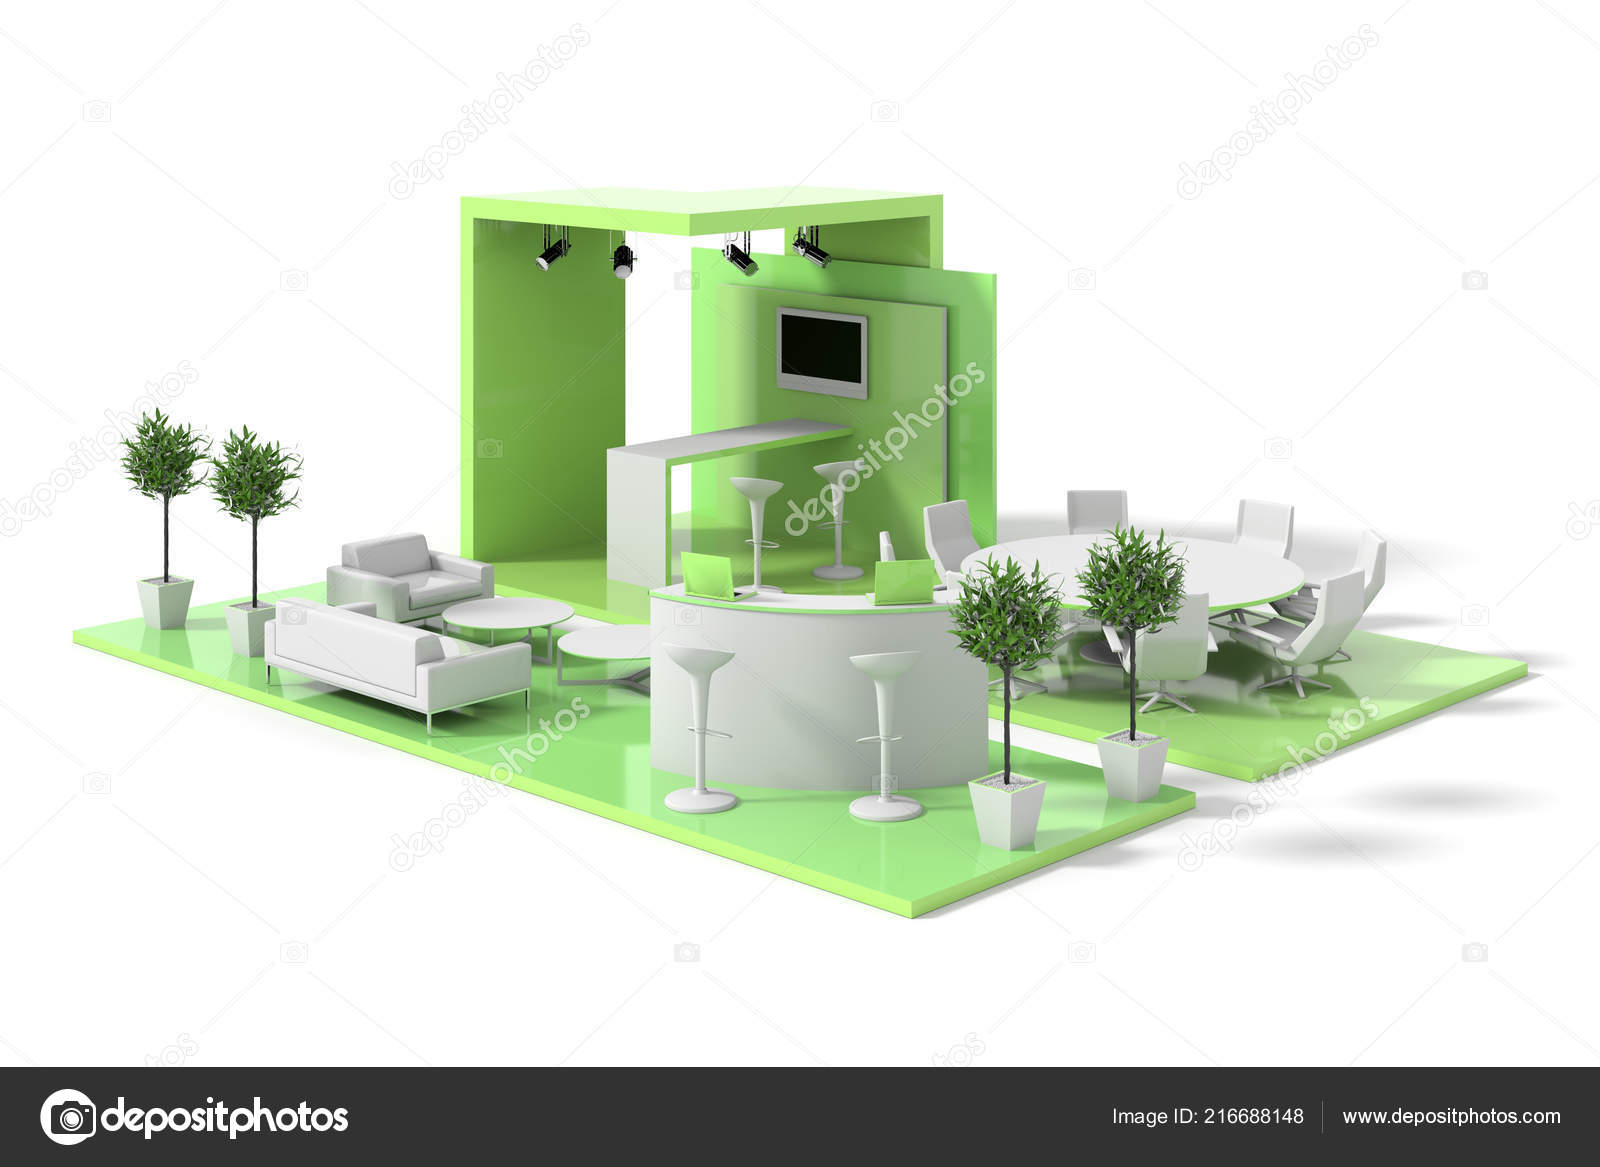 Exhibition Stand Free D Model : Green exhibition stand model white background u2014 stock photo